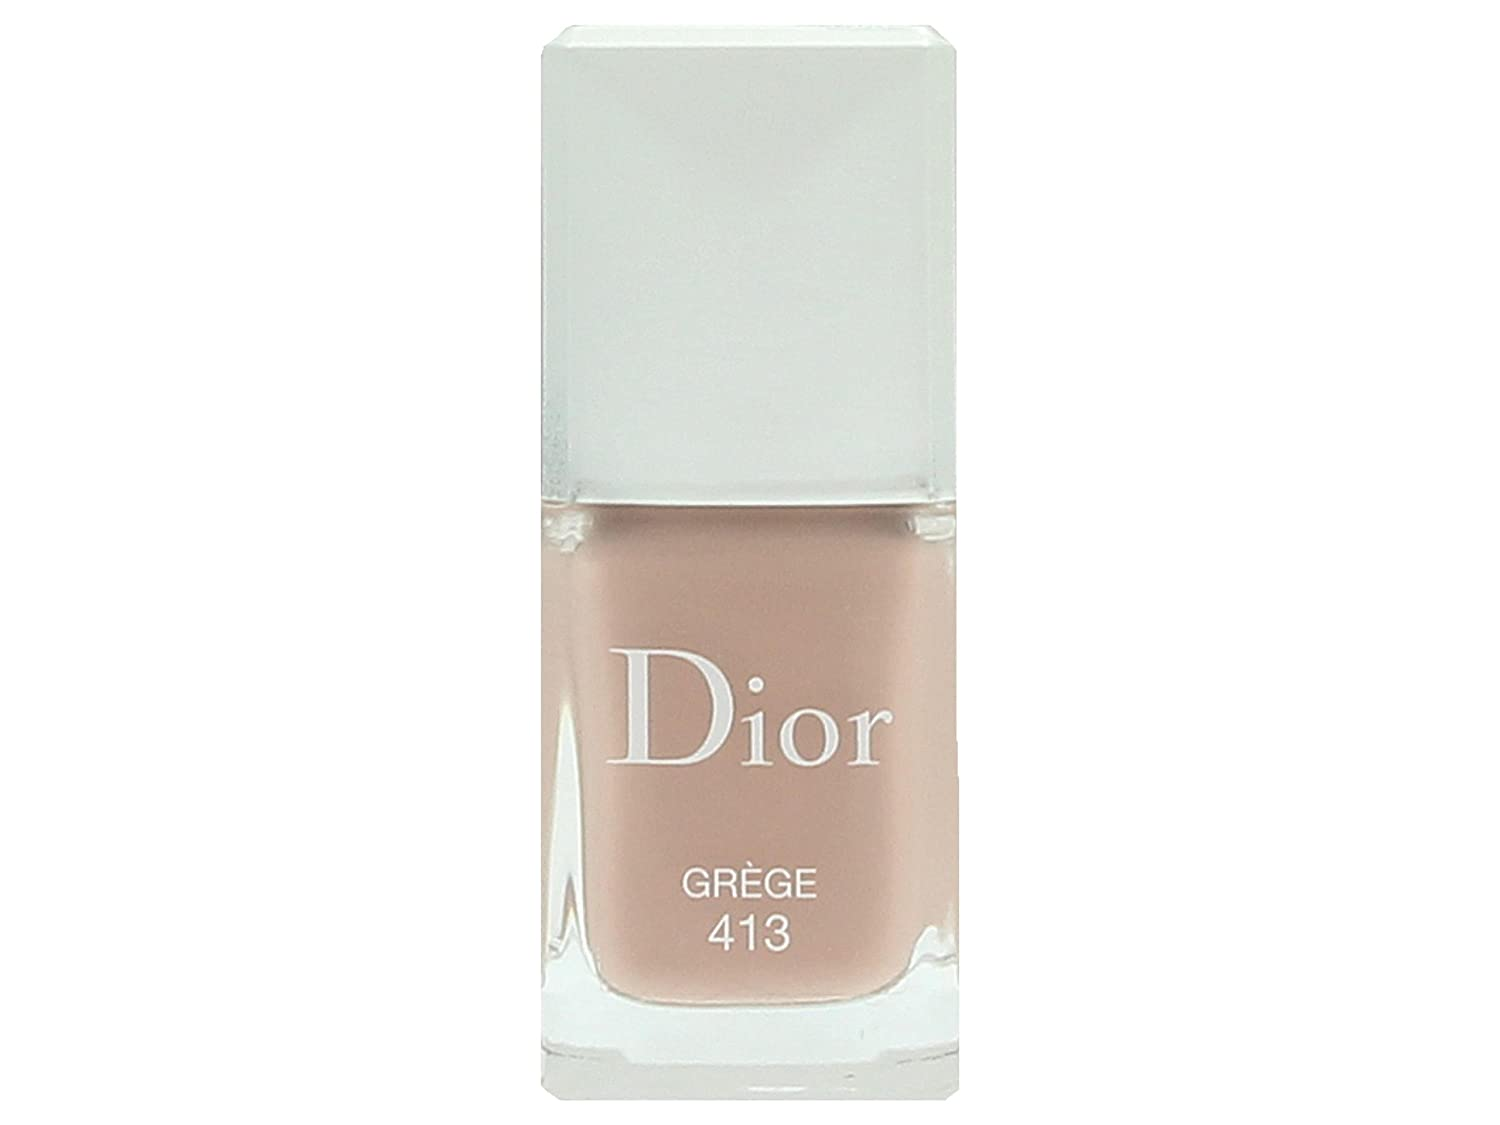 Vernis 413 di Dior, Smalto Donna - 10 ml. Christian Dior Italy 3348901208154